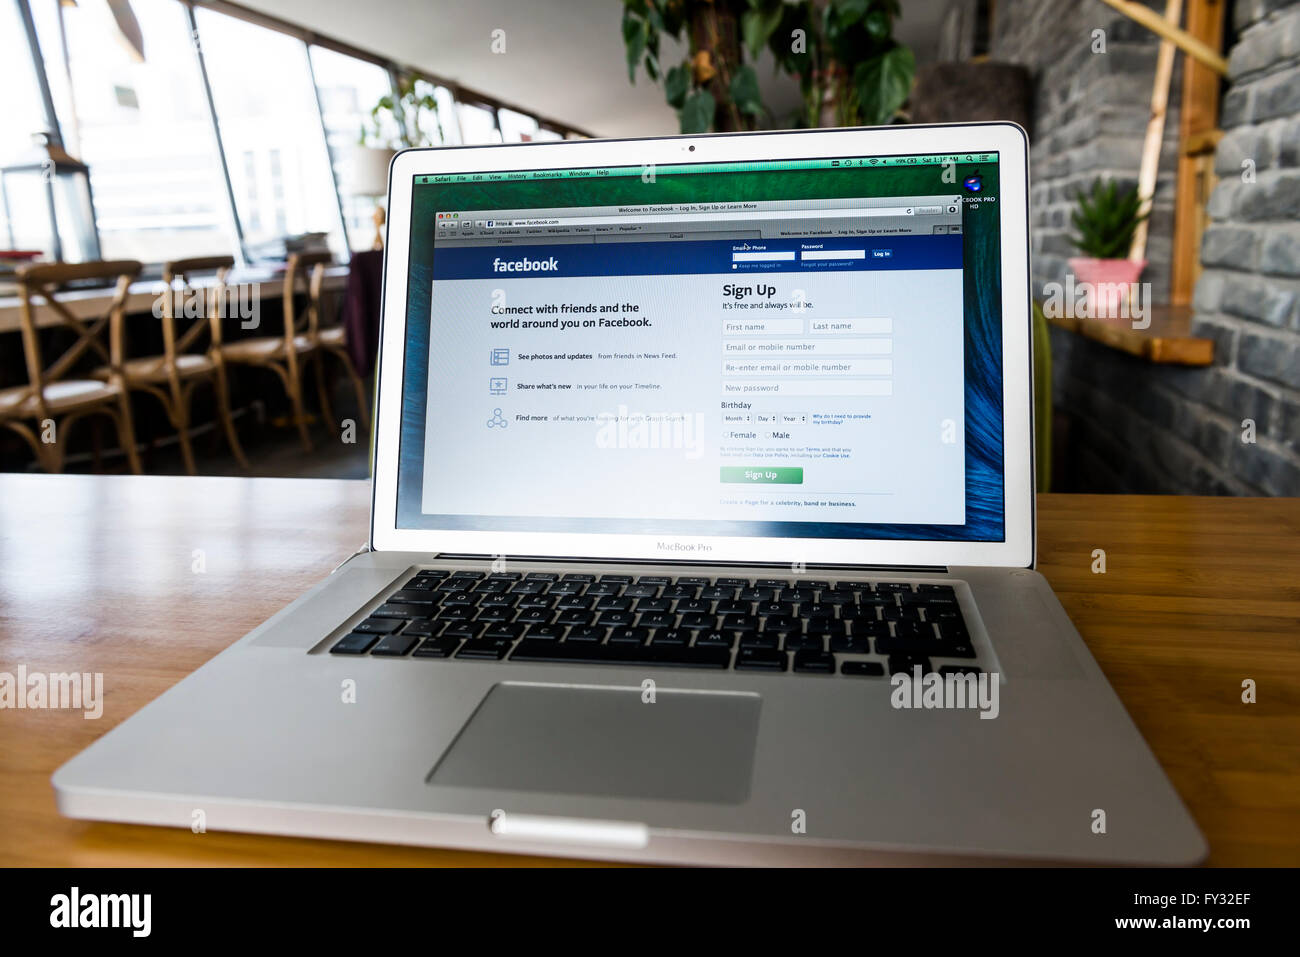 MacBook Pro Apple laptop on a desk with Facebook web page on display - Stock Image